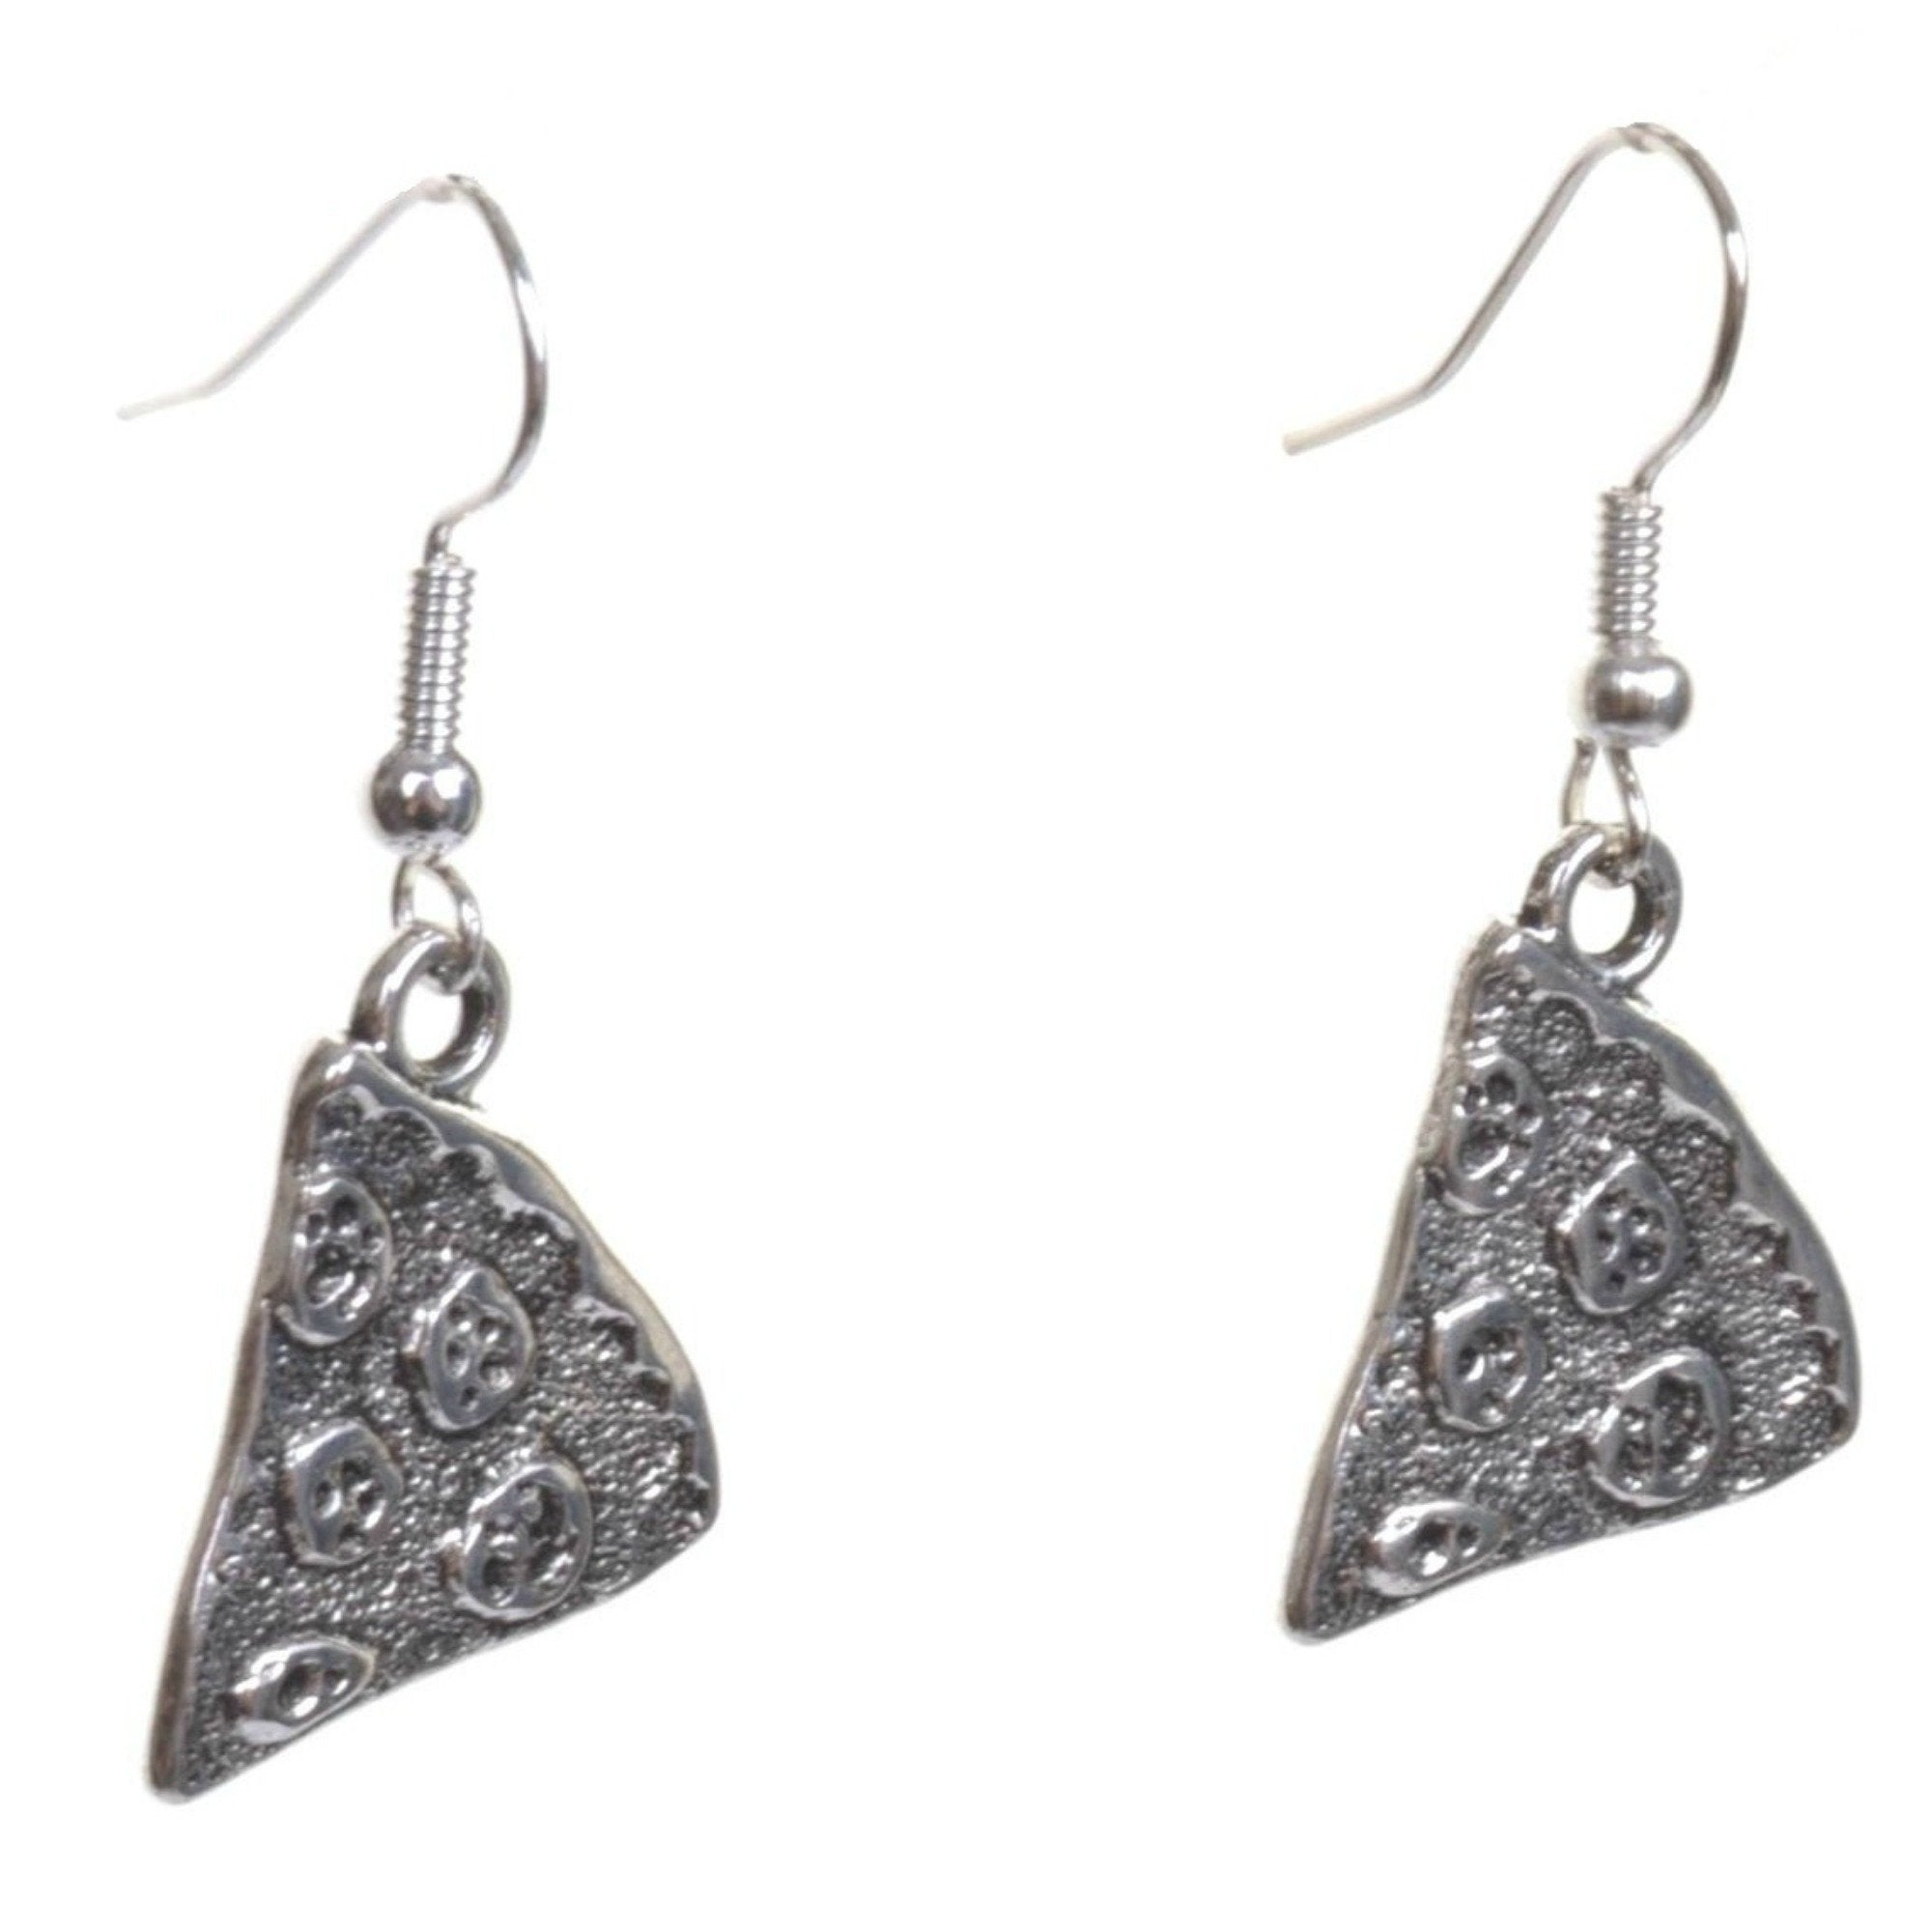 Little Silver Pizza Slice Earrings - Minimum Mouse